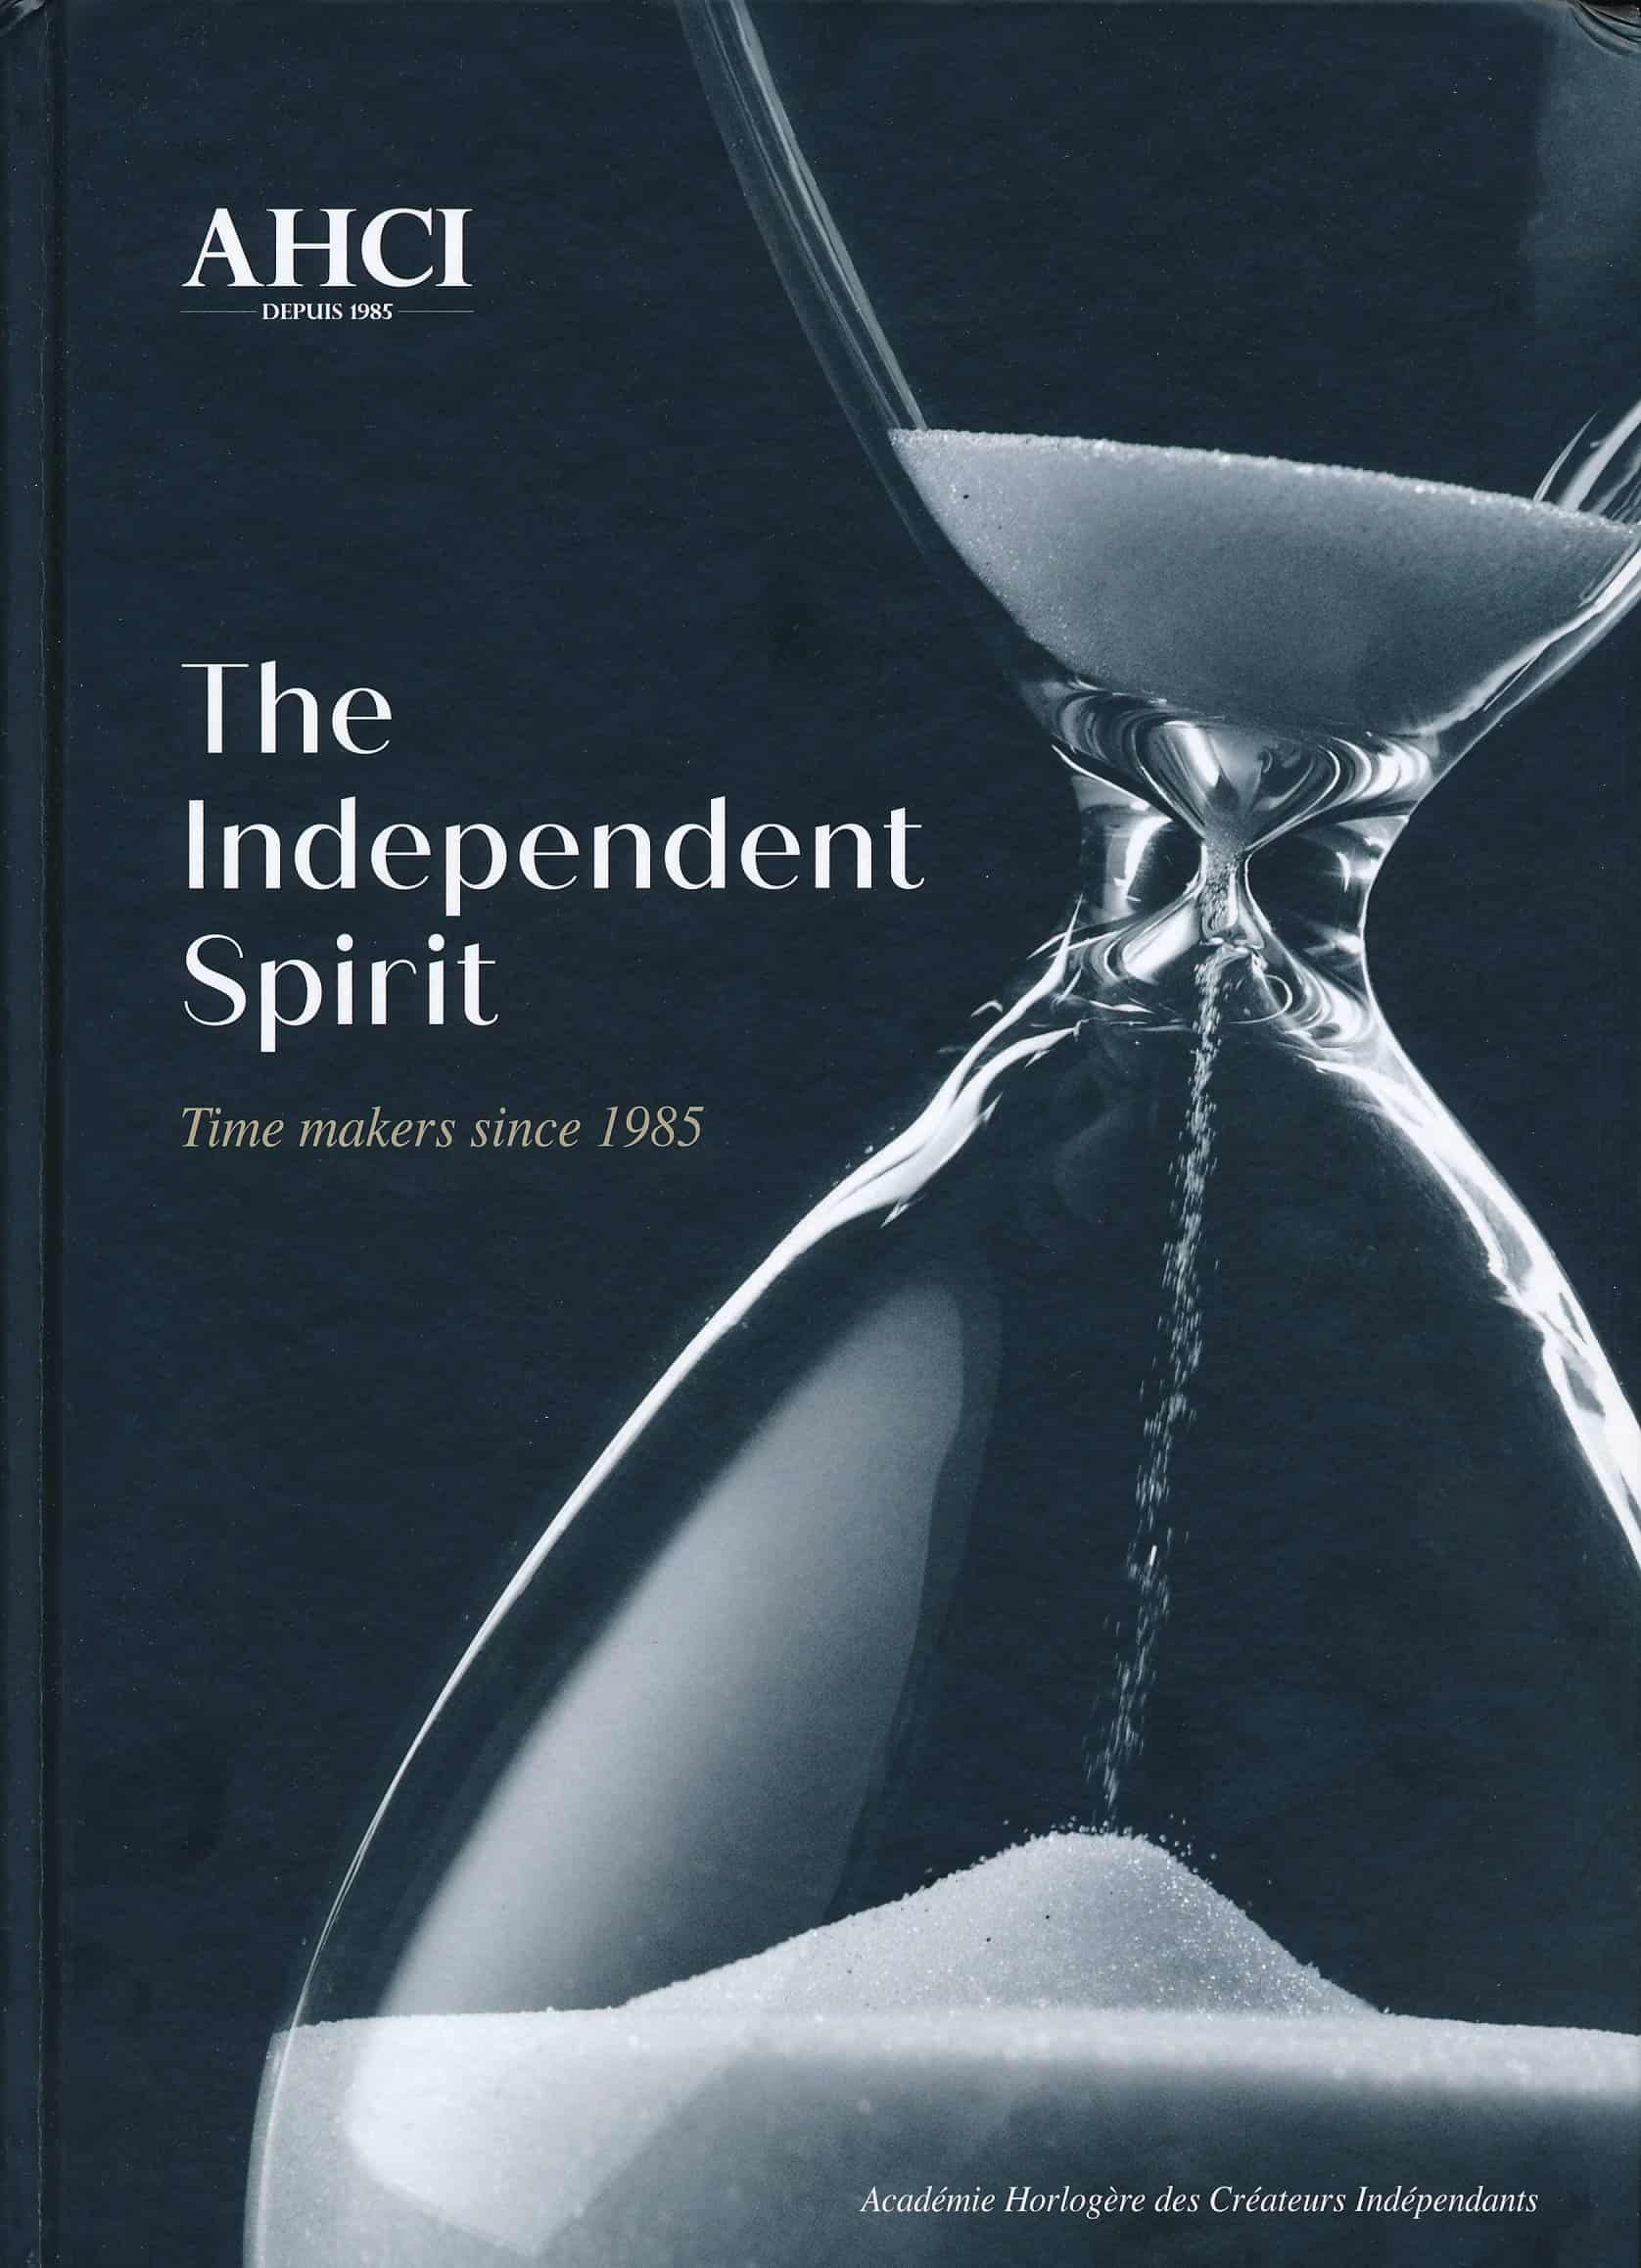 Buch AHCI The Independent Spirit 2020